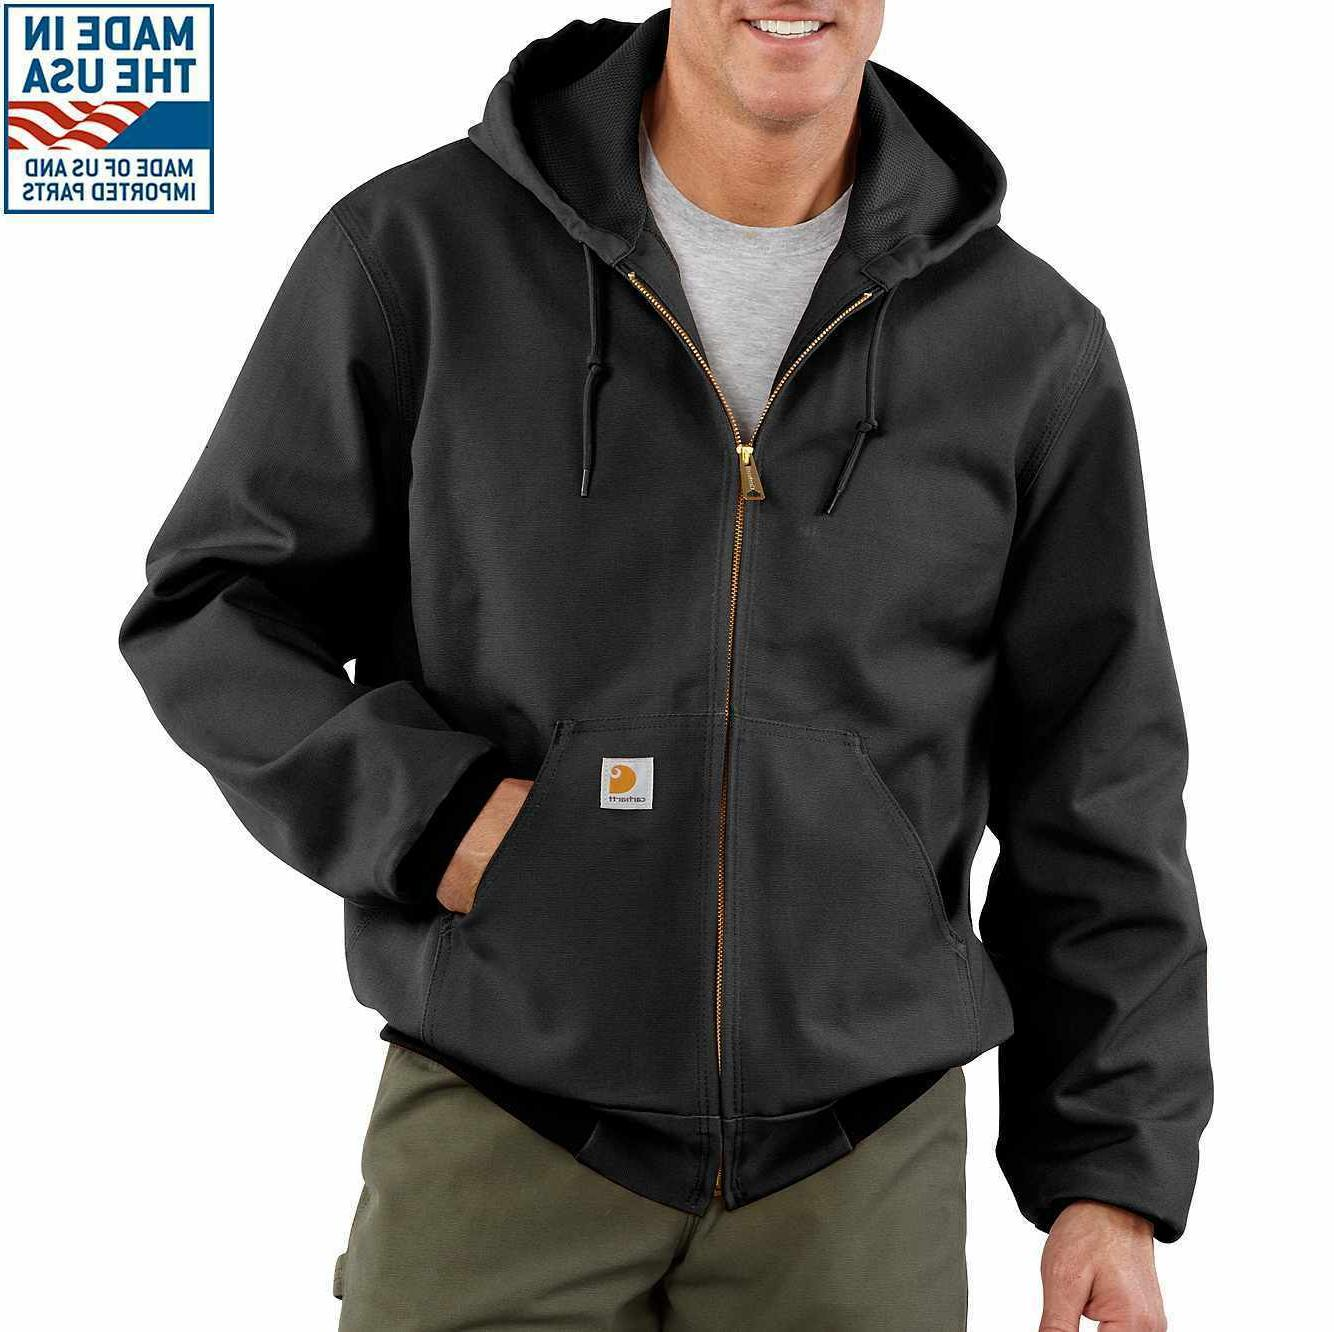 duck active jacket thermal lined